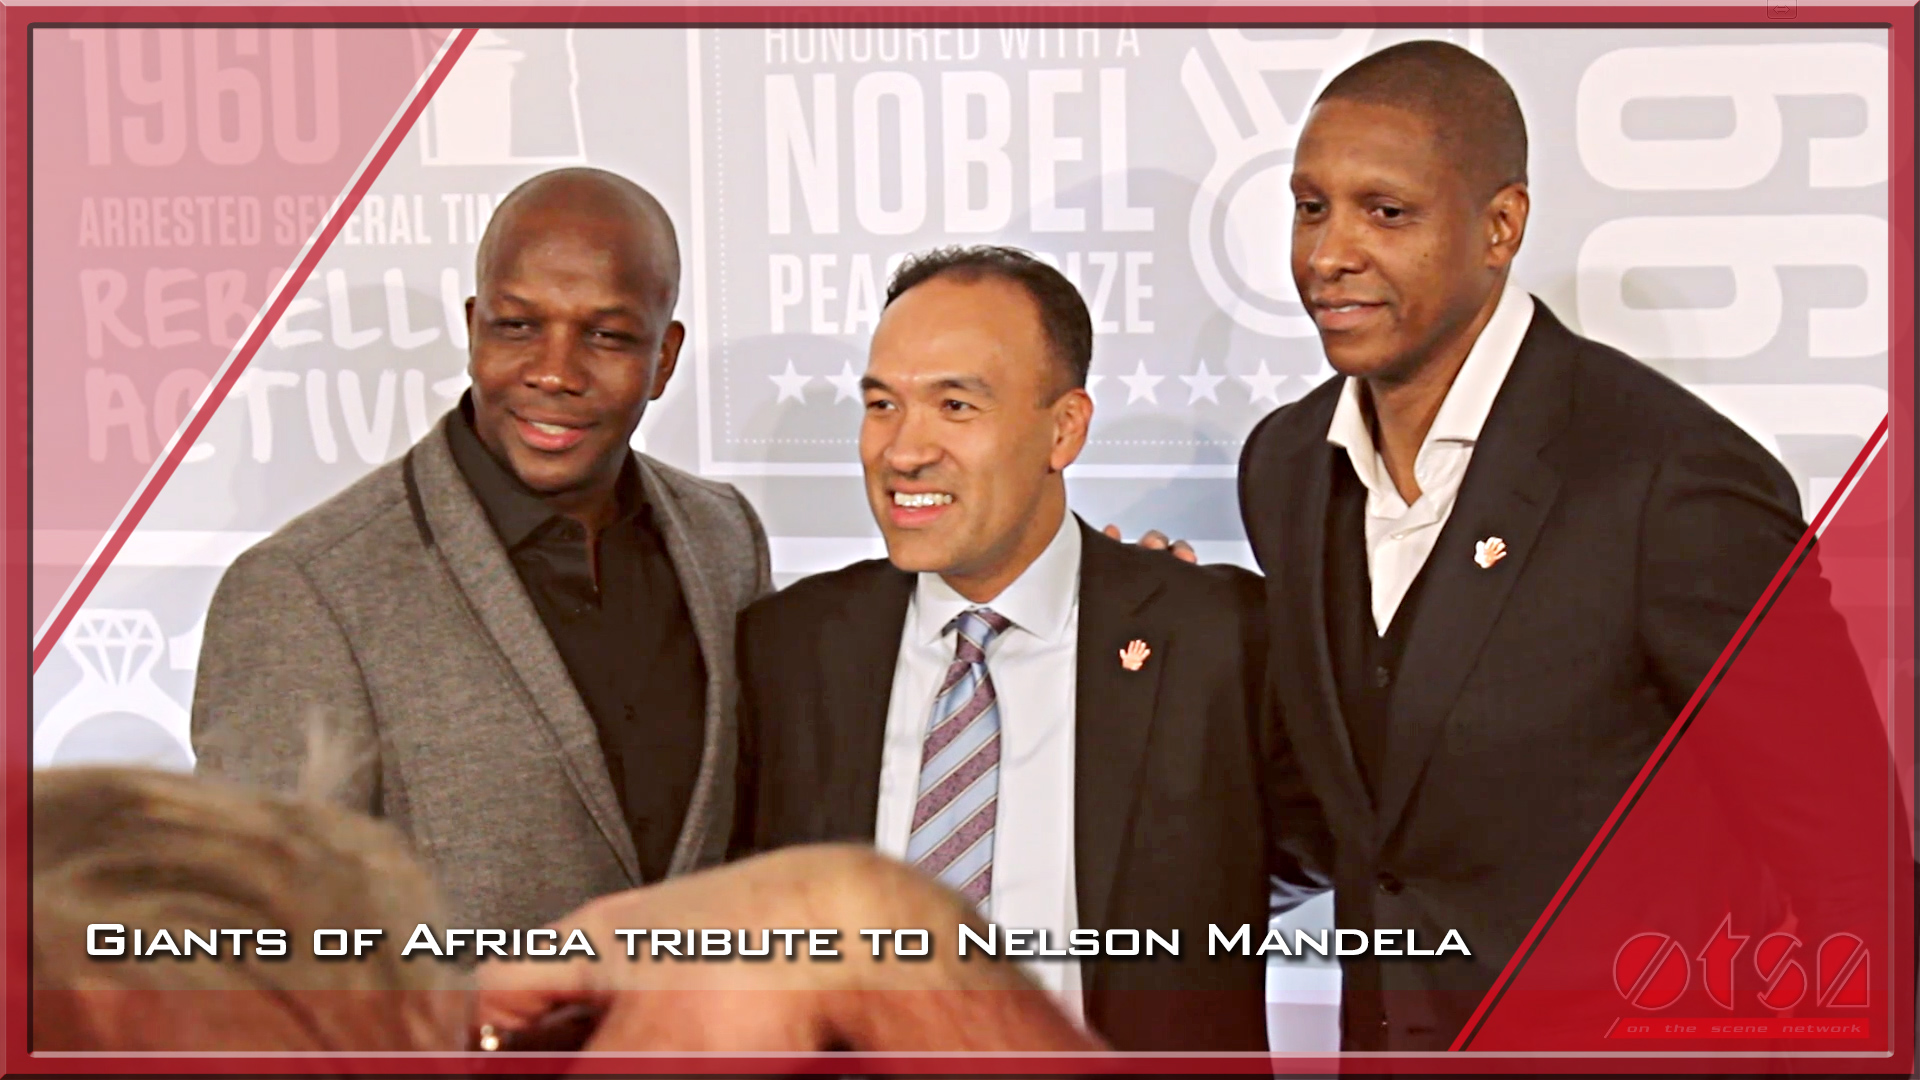 Giants of Africa special tribute event to Nelson Mandela